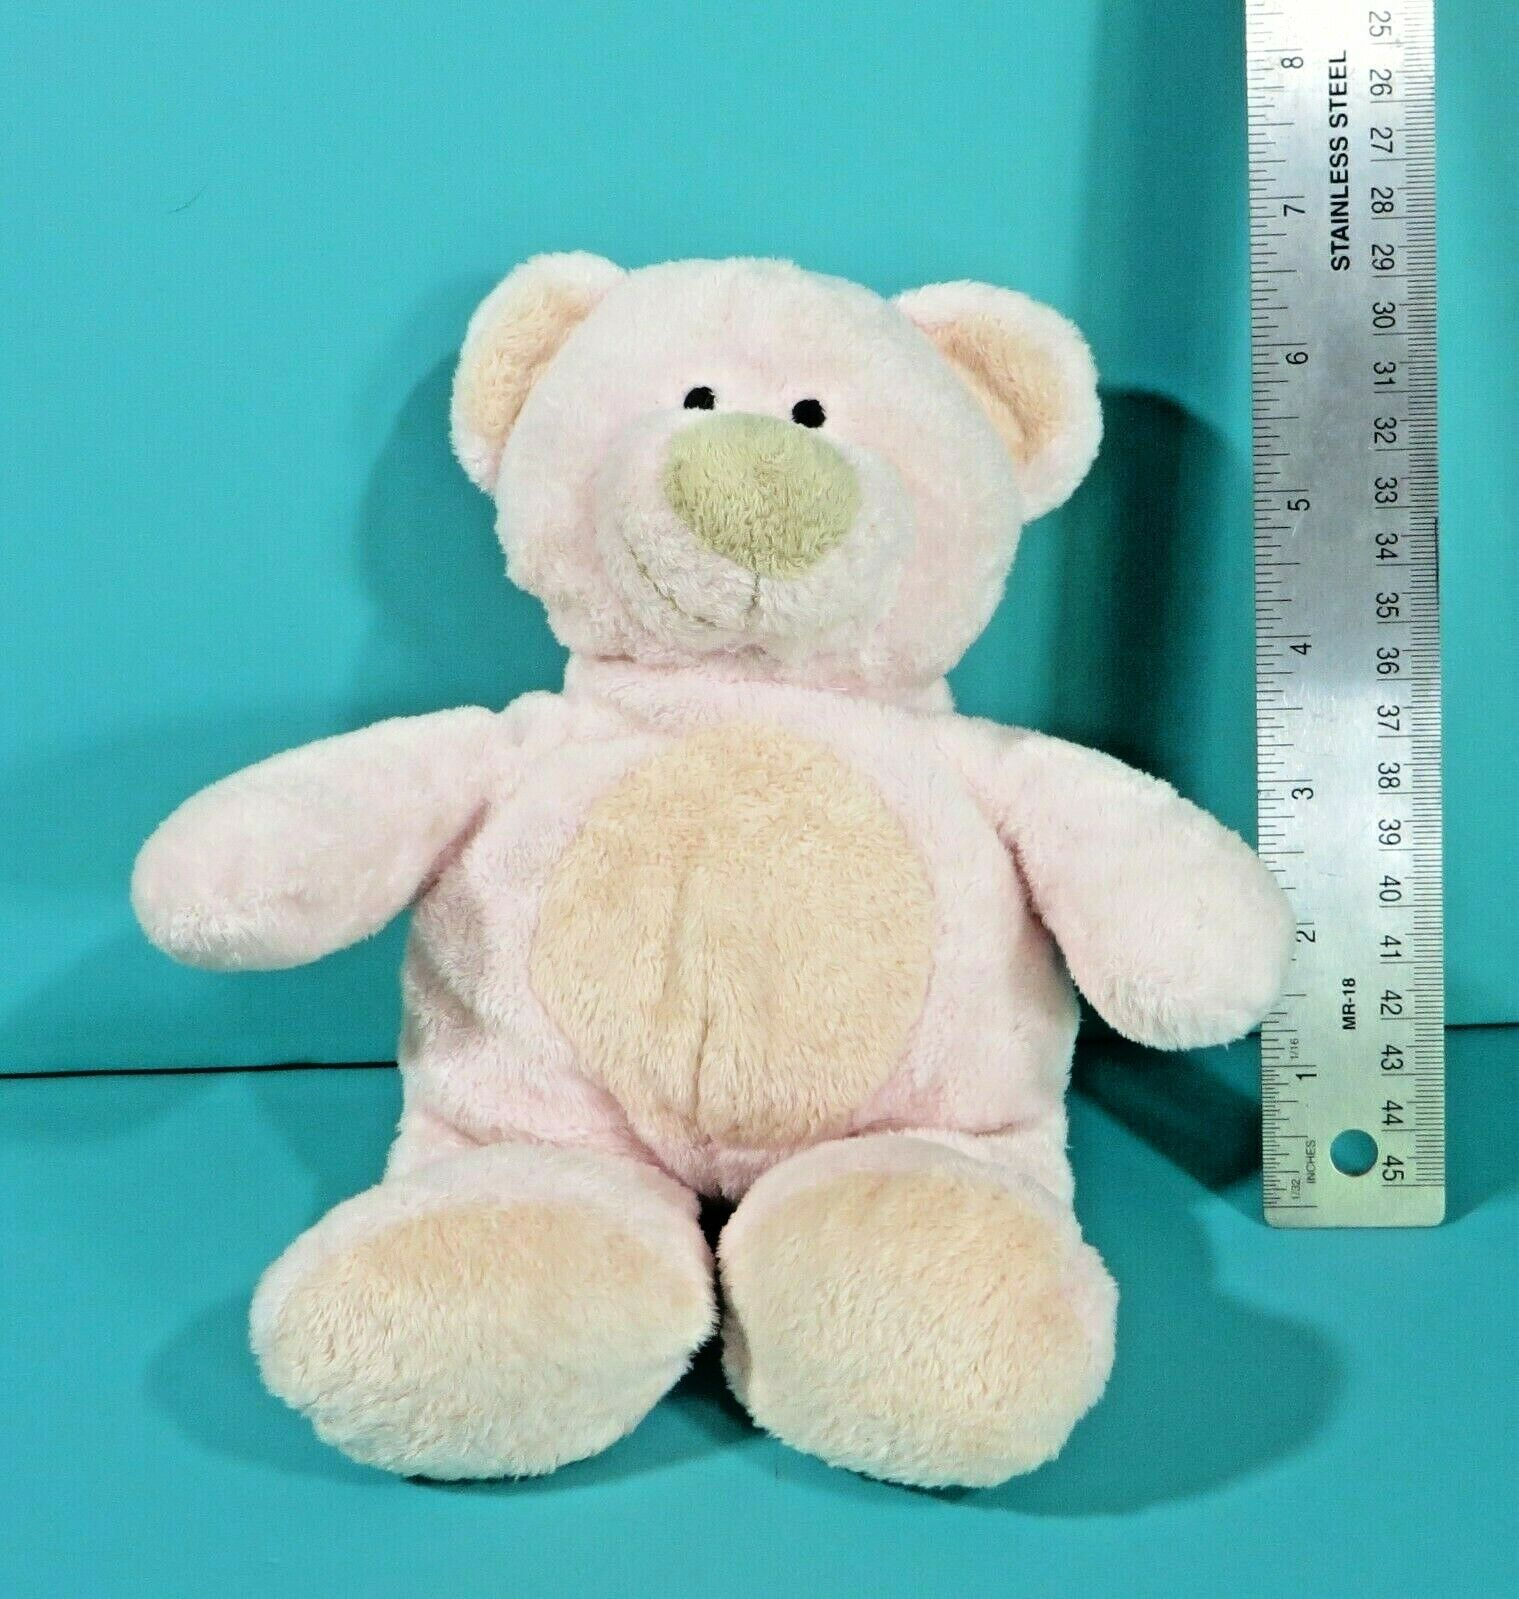 "Primary image for Ty Pluffies Pinks Teddy Bear 9"" Plush Pink Peach Stuffed Animal Baby Lovey 2002"